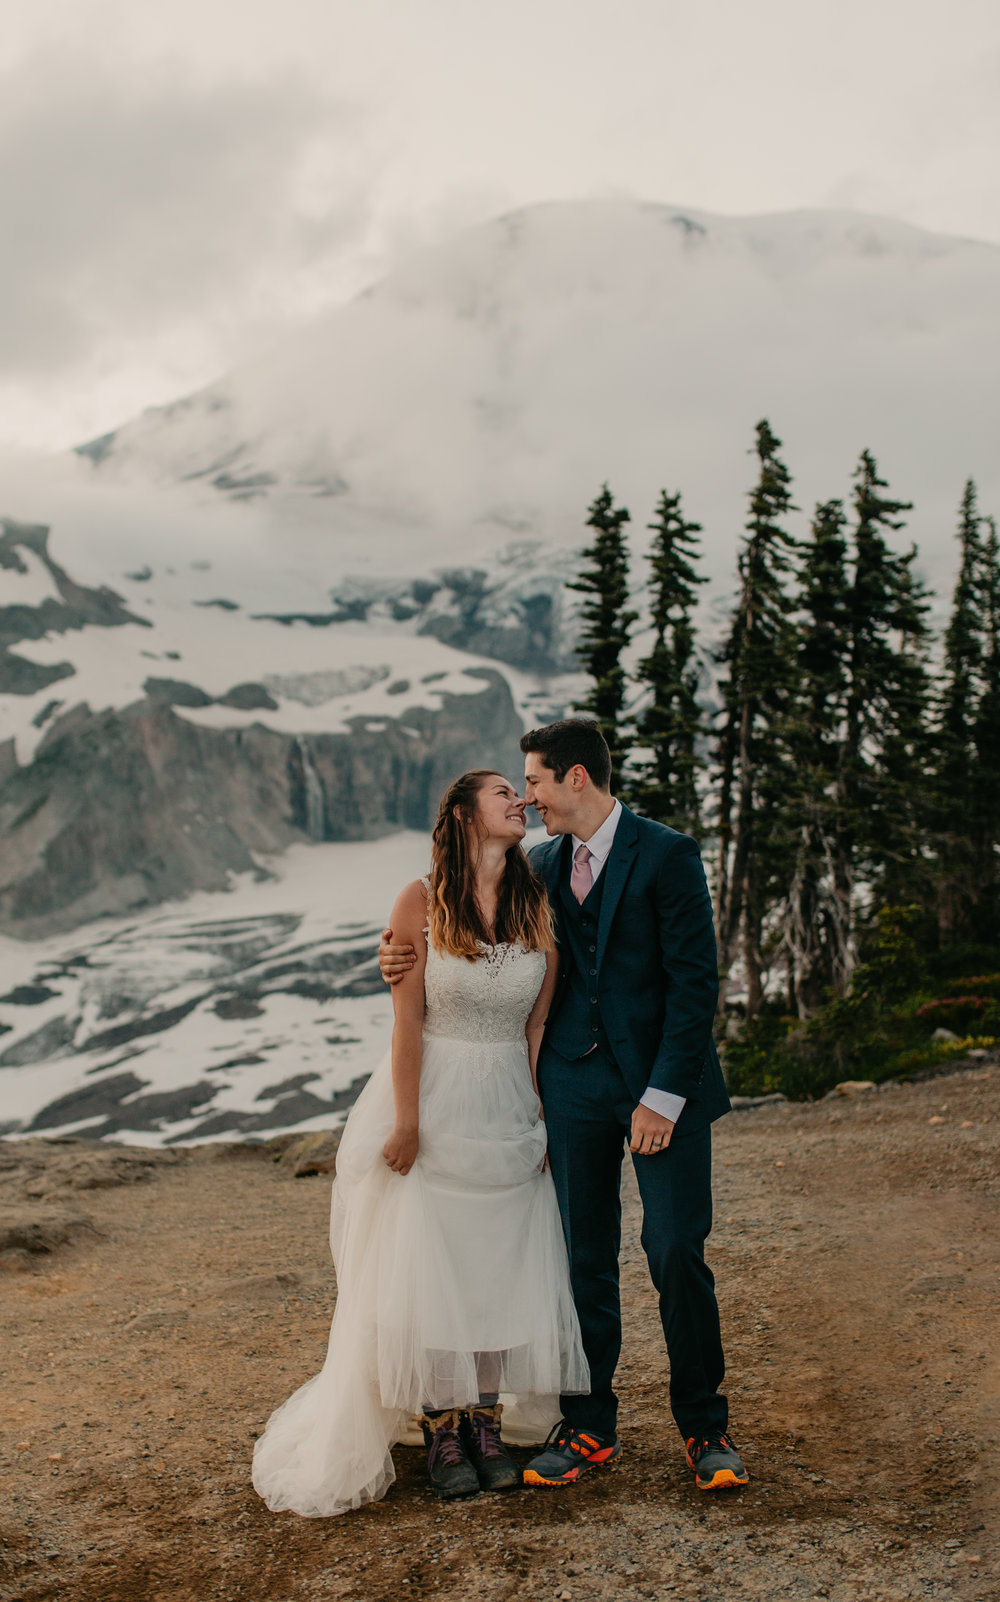 Nicole-Daacke-Photography-Mt-Rainier-elopement-photographer-washington-mountain-epic-wedding-photography-wildflowers-at-rainier-pine-tree-cloudy-summer-day-at-mountain-rainier-69.jpg